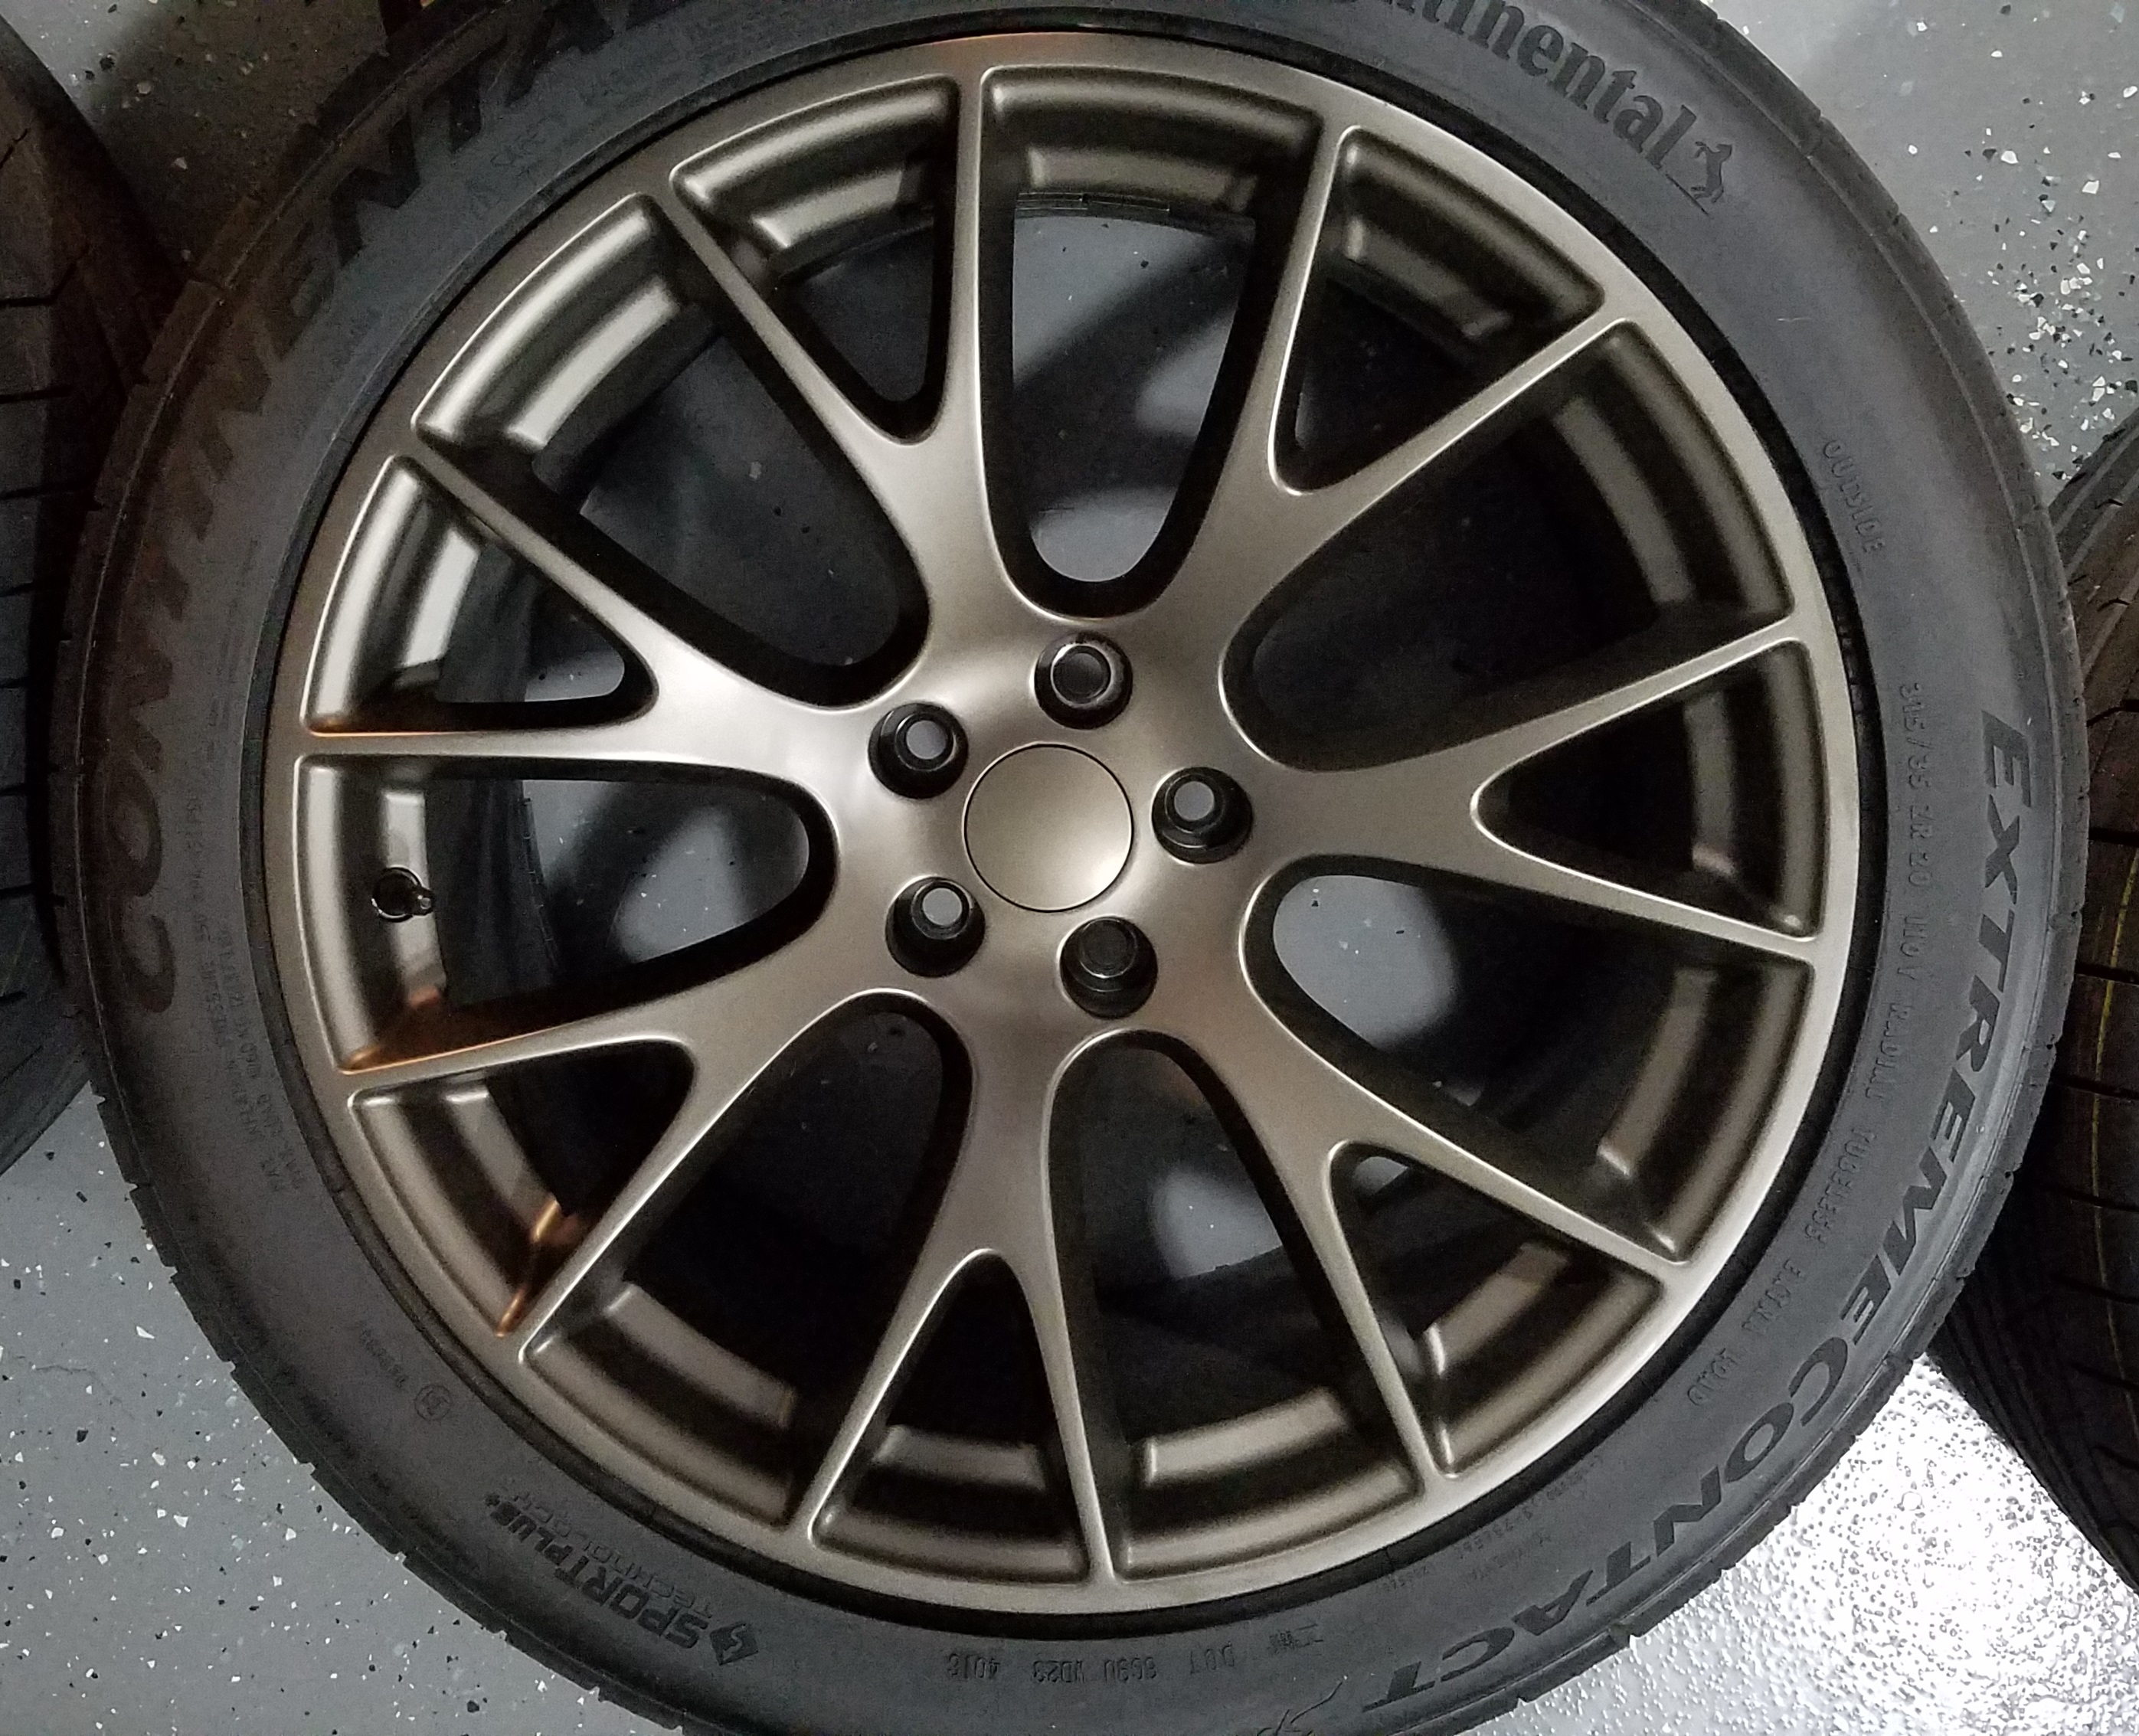 FOR SALE Barely used Hellcat replica 20x9.5/20x10.5 wheel ...